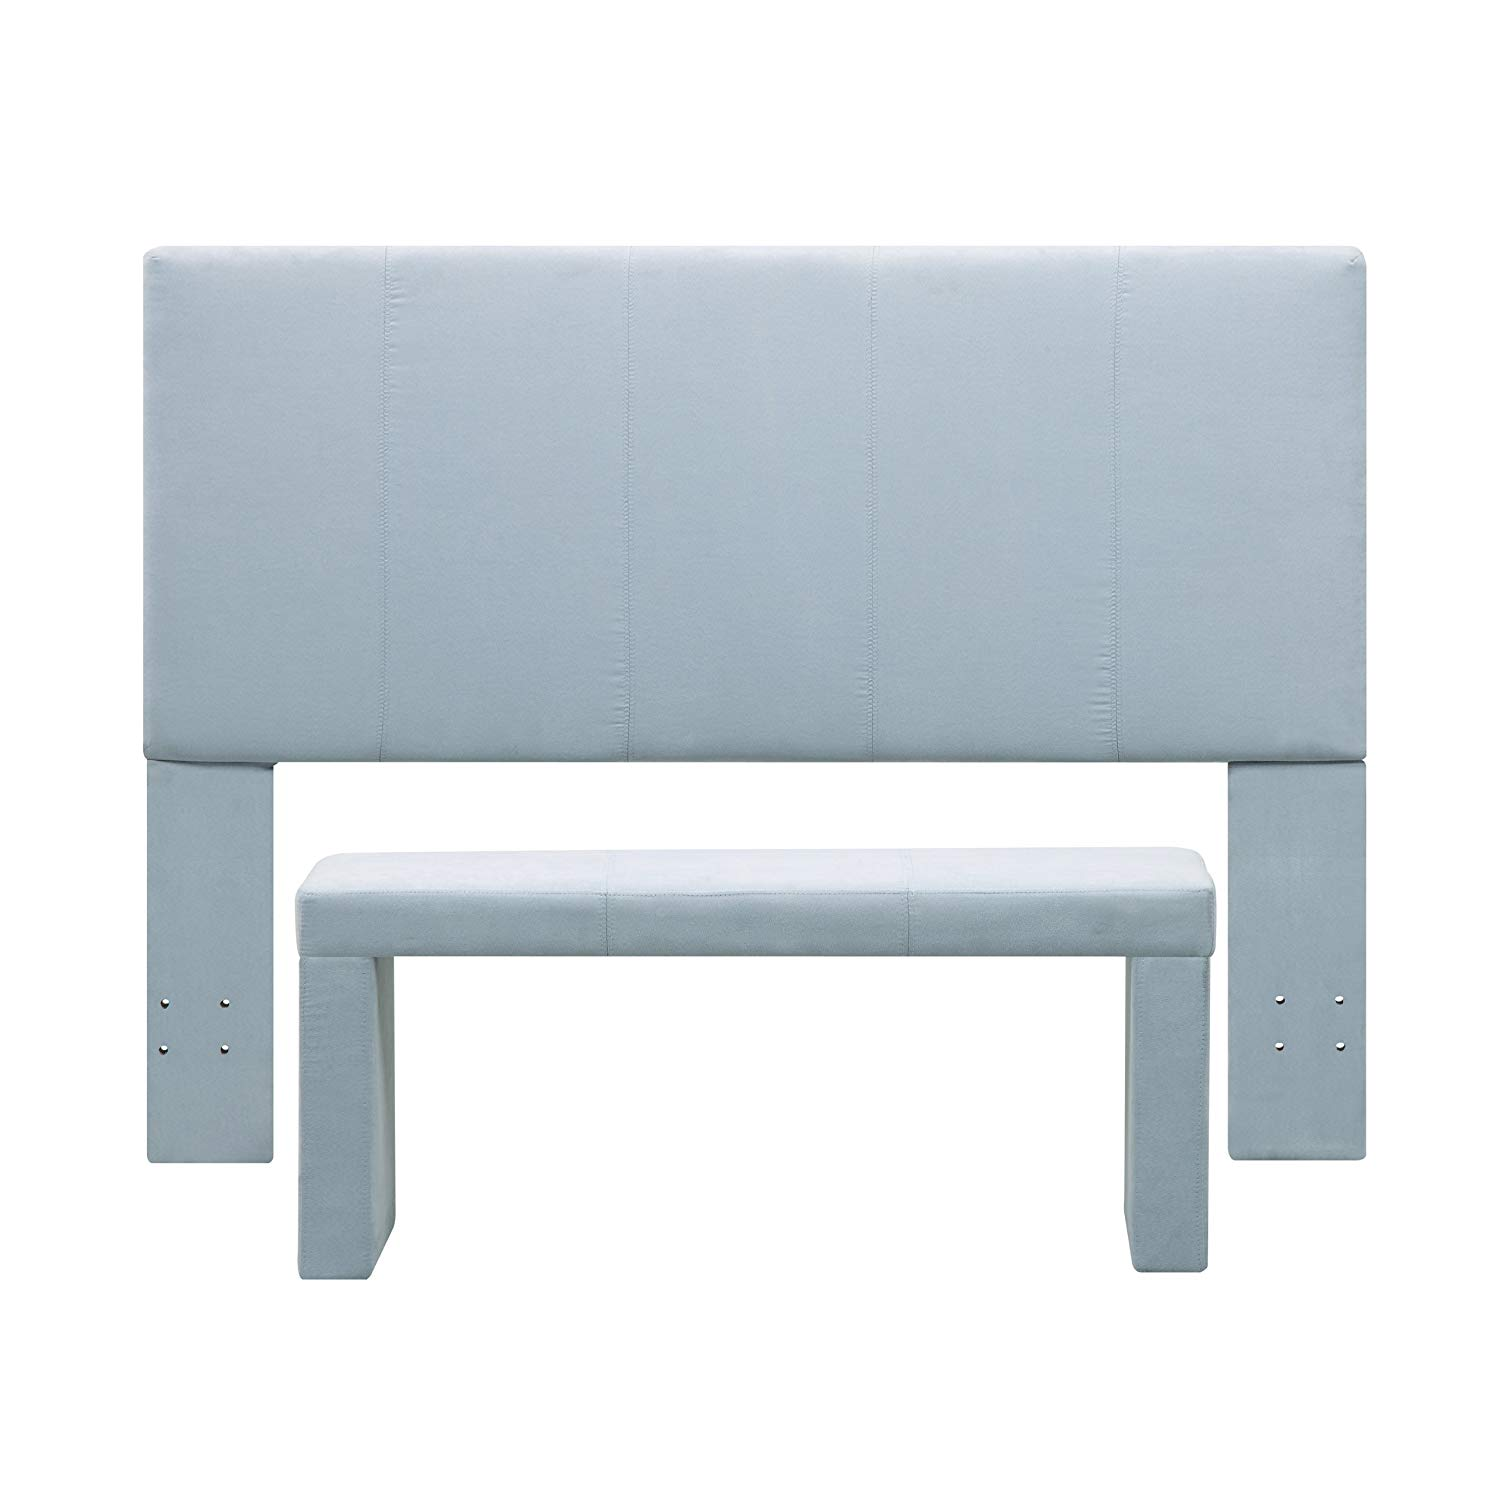 Handy Living 40HB-FQ-AAA52 Nelson Microfiber Headboard and Bench Set, Full/Queen, Sky Blue